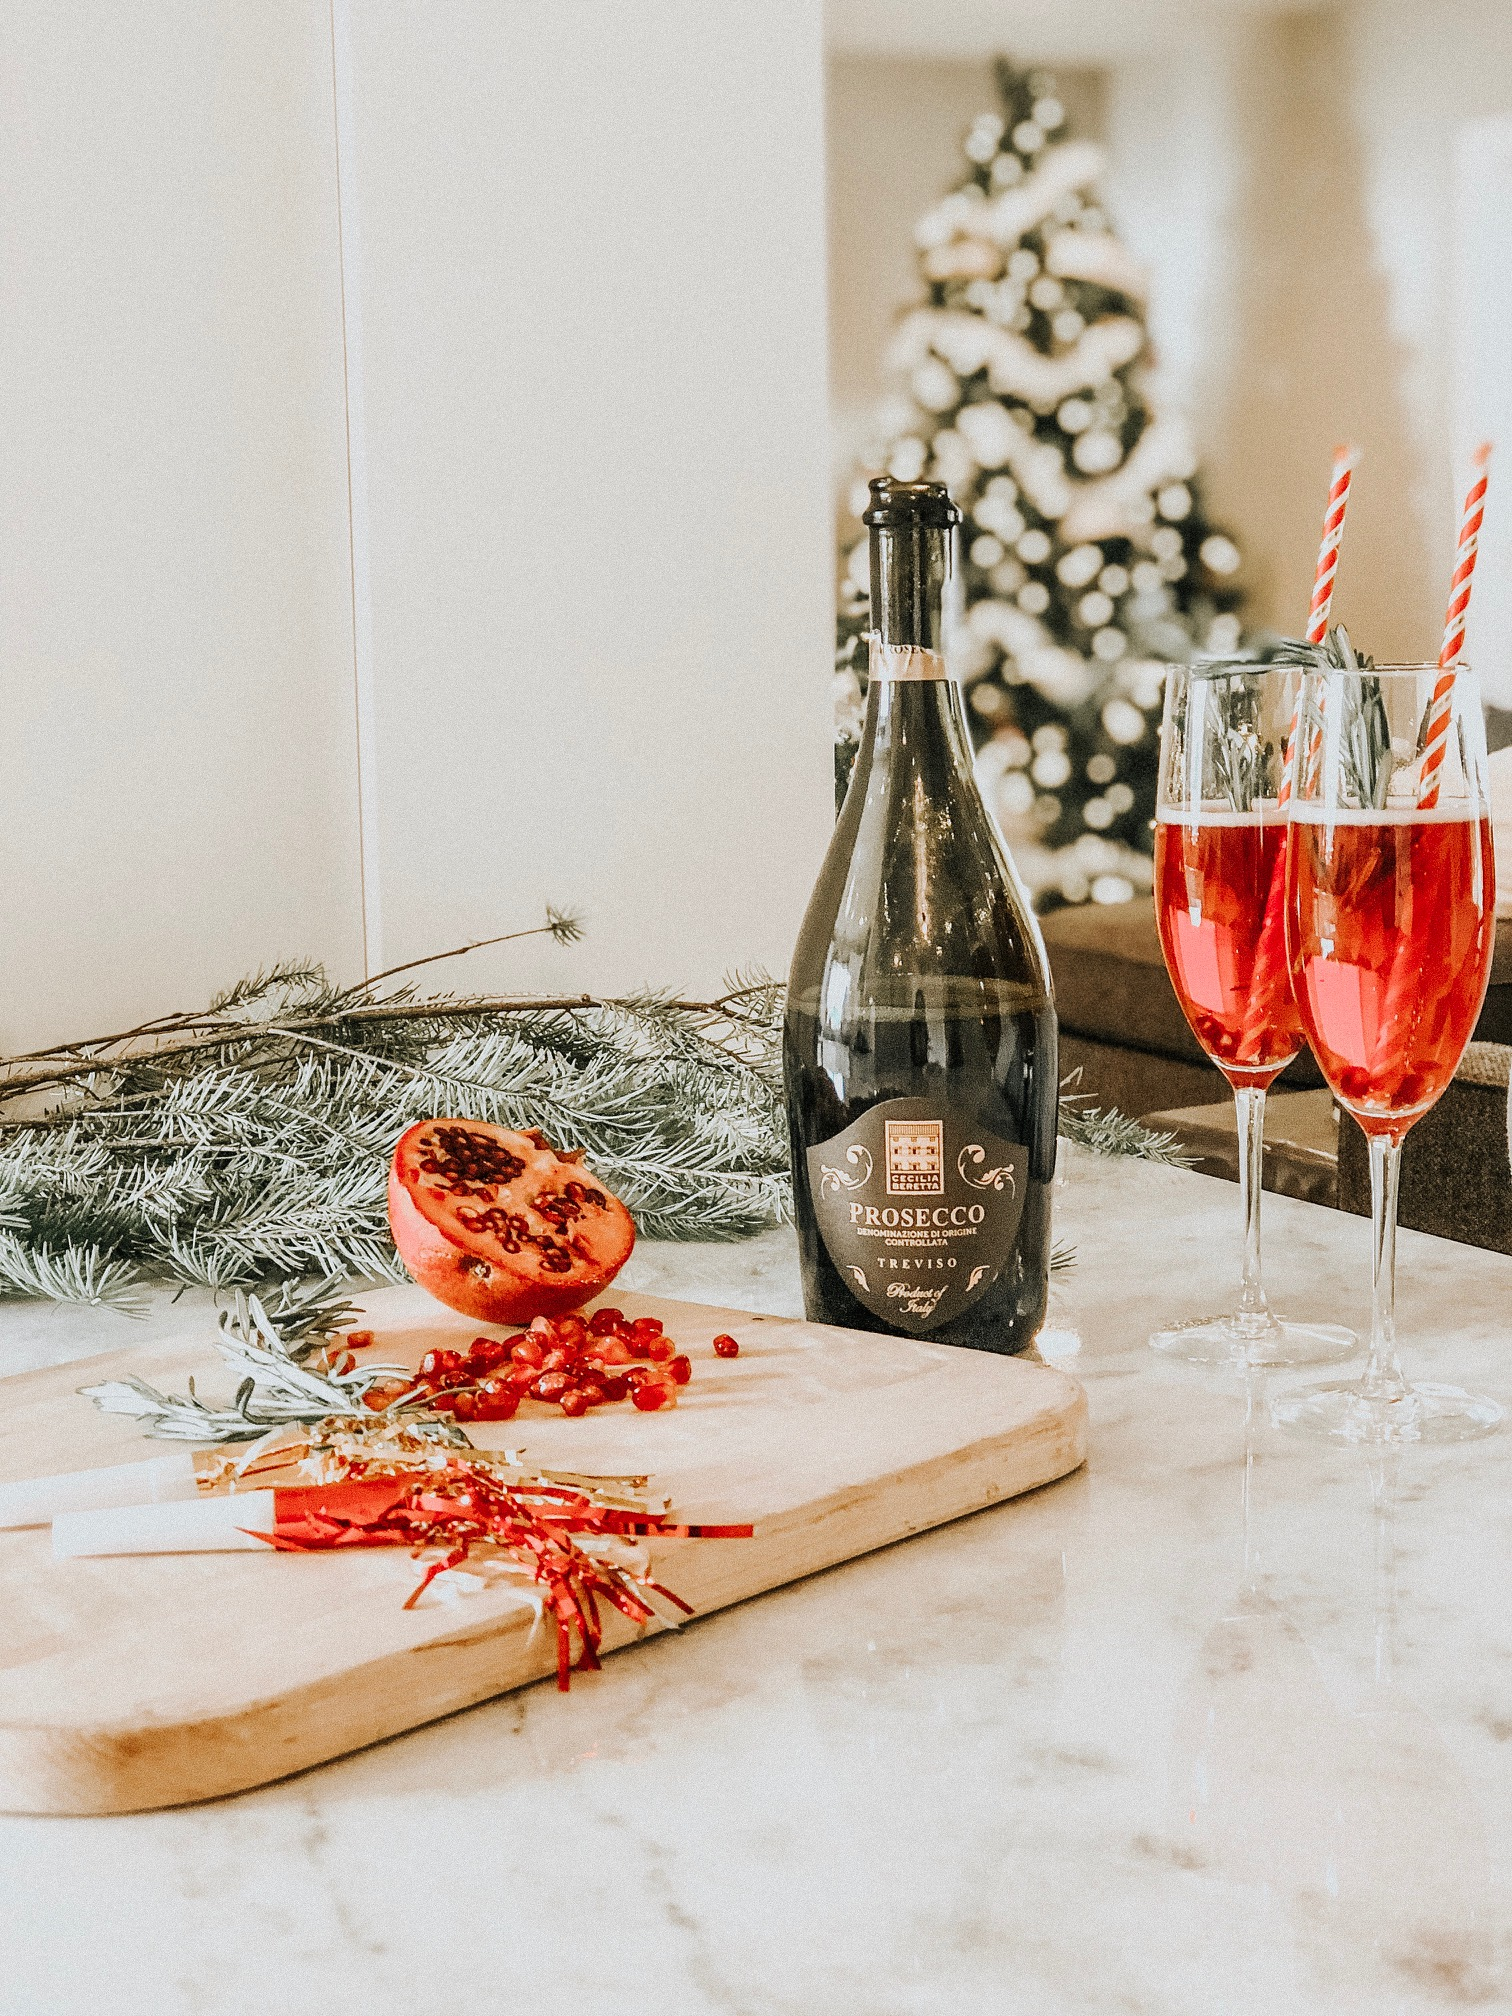 Festive Prosecco Cocktail | Daily Splendor Life and Style Blog | Holiday drink, parties, holidays, christmas, new years eve #prosecco #drinkrecipe #bubbly #cocktails